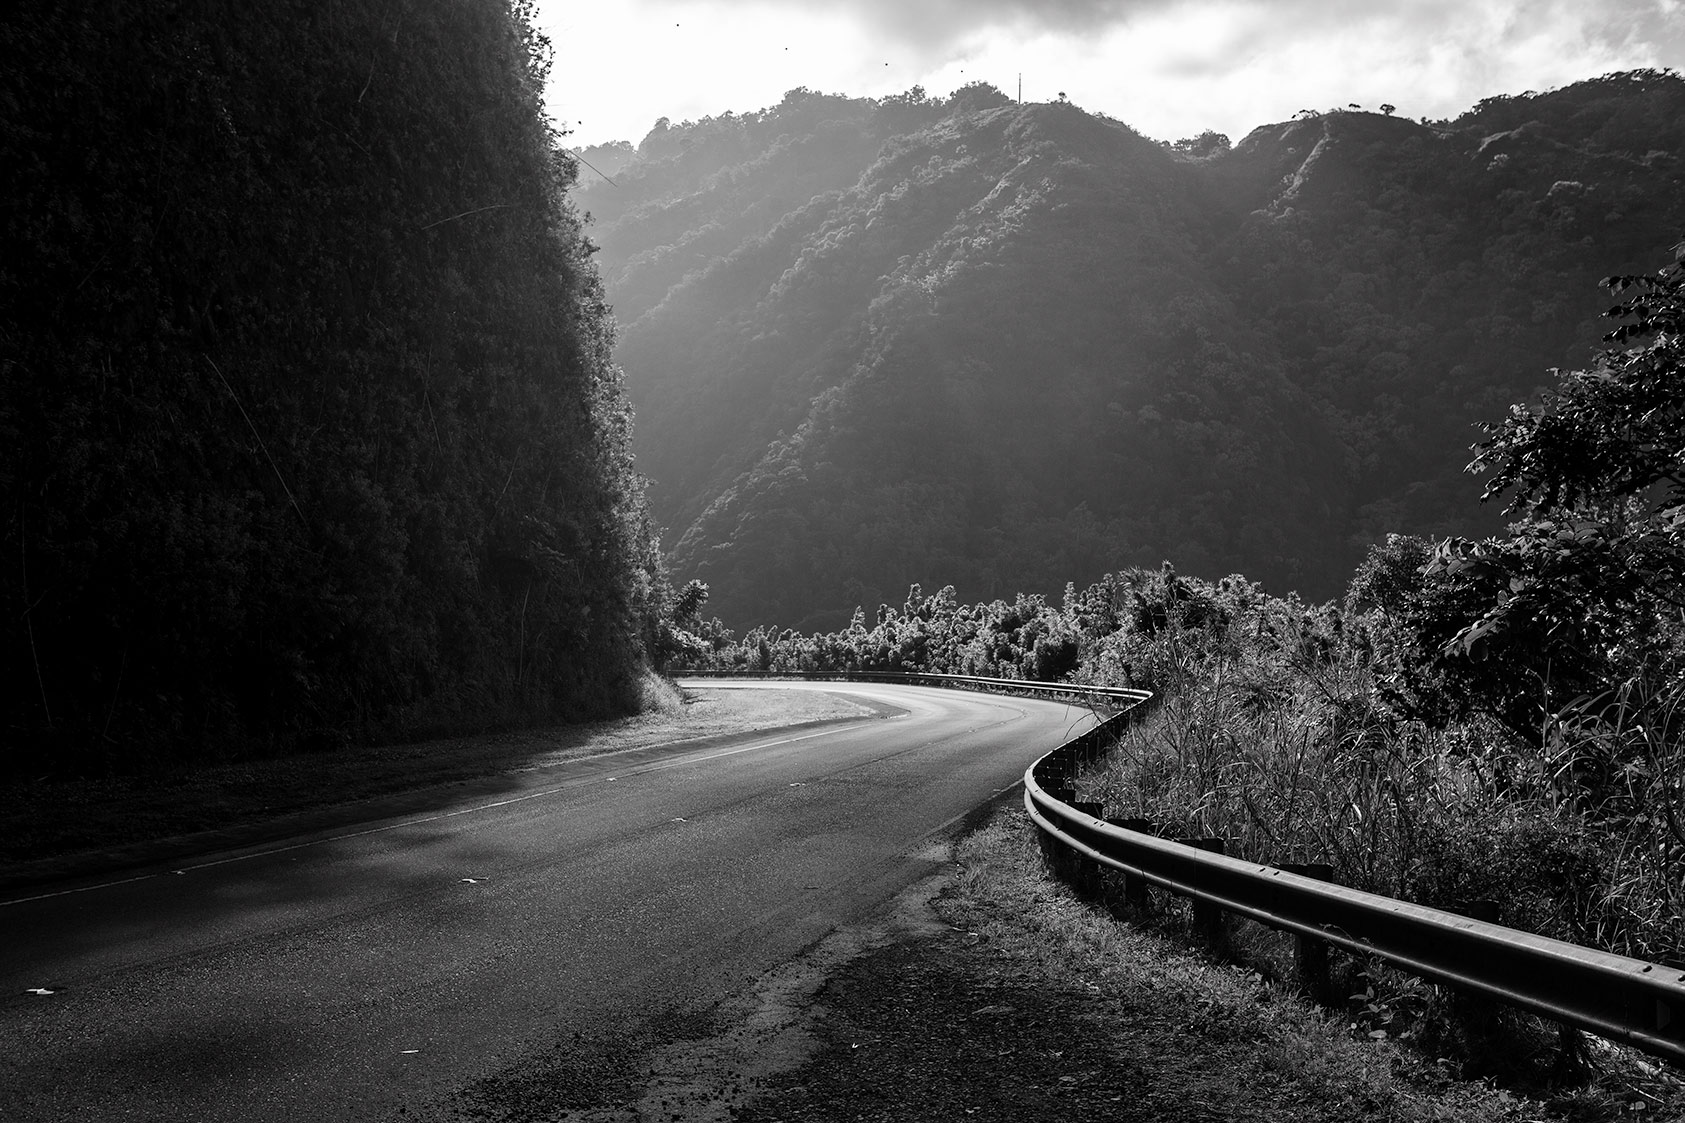 Road_to_Hana_BW2010-195